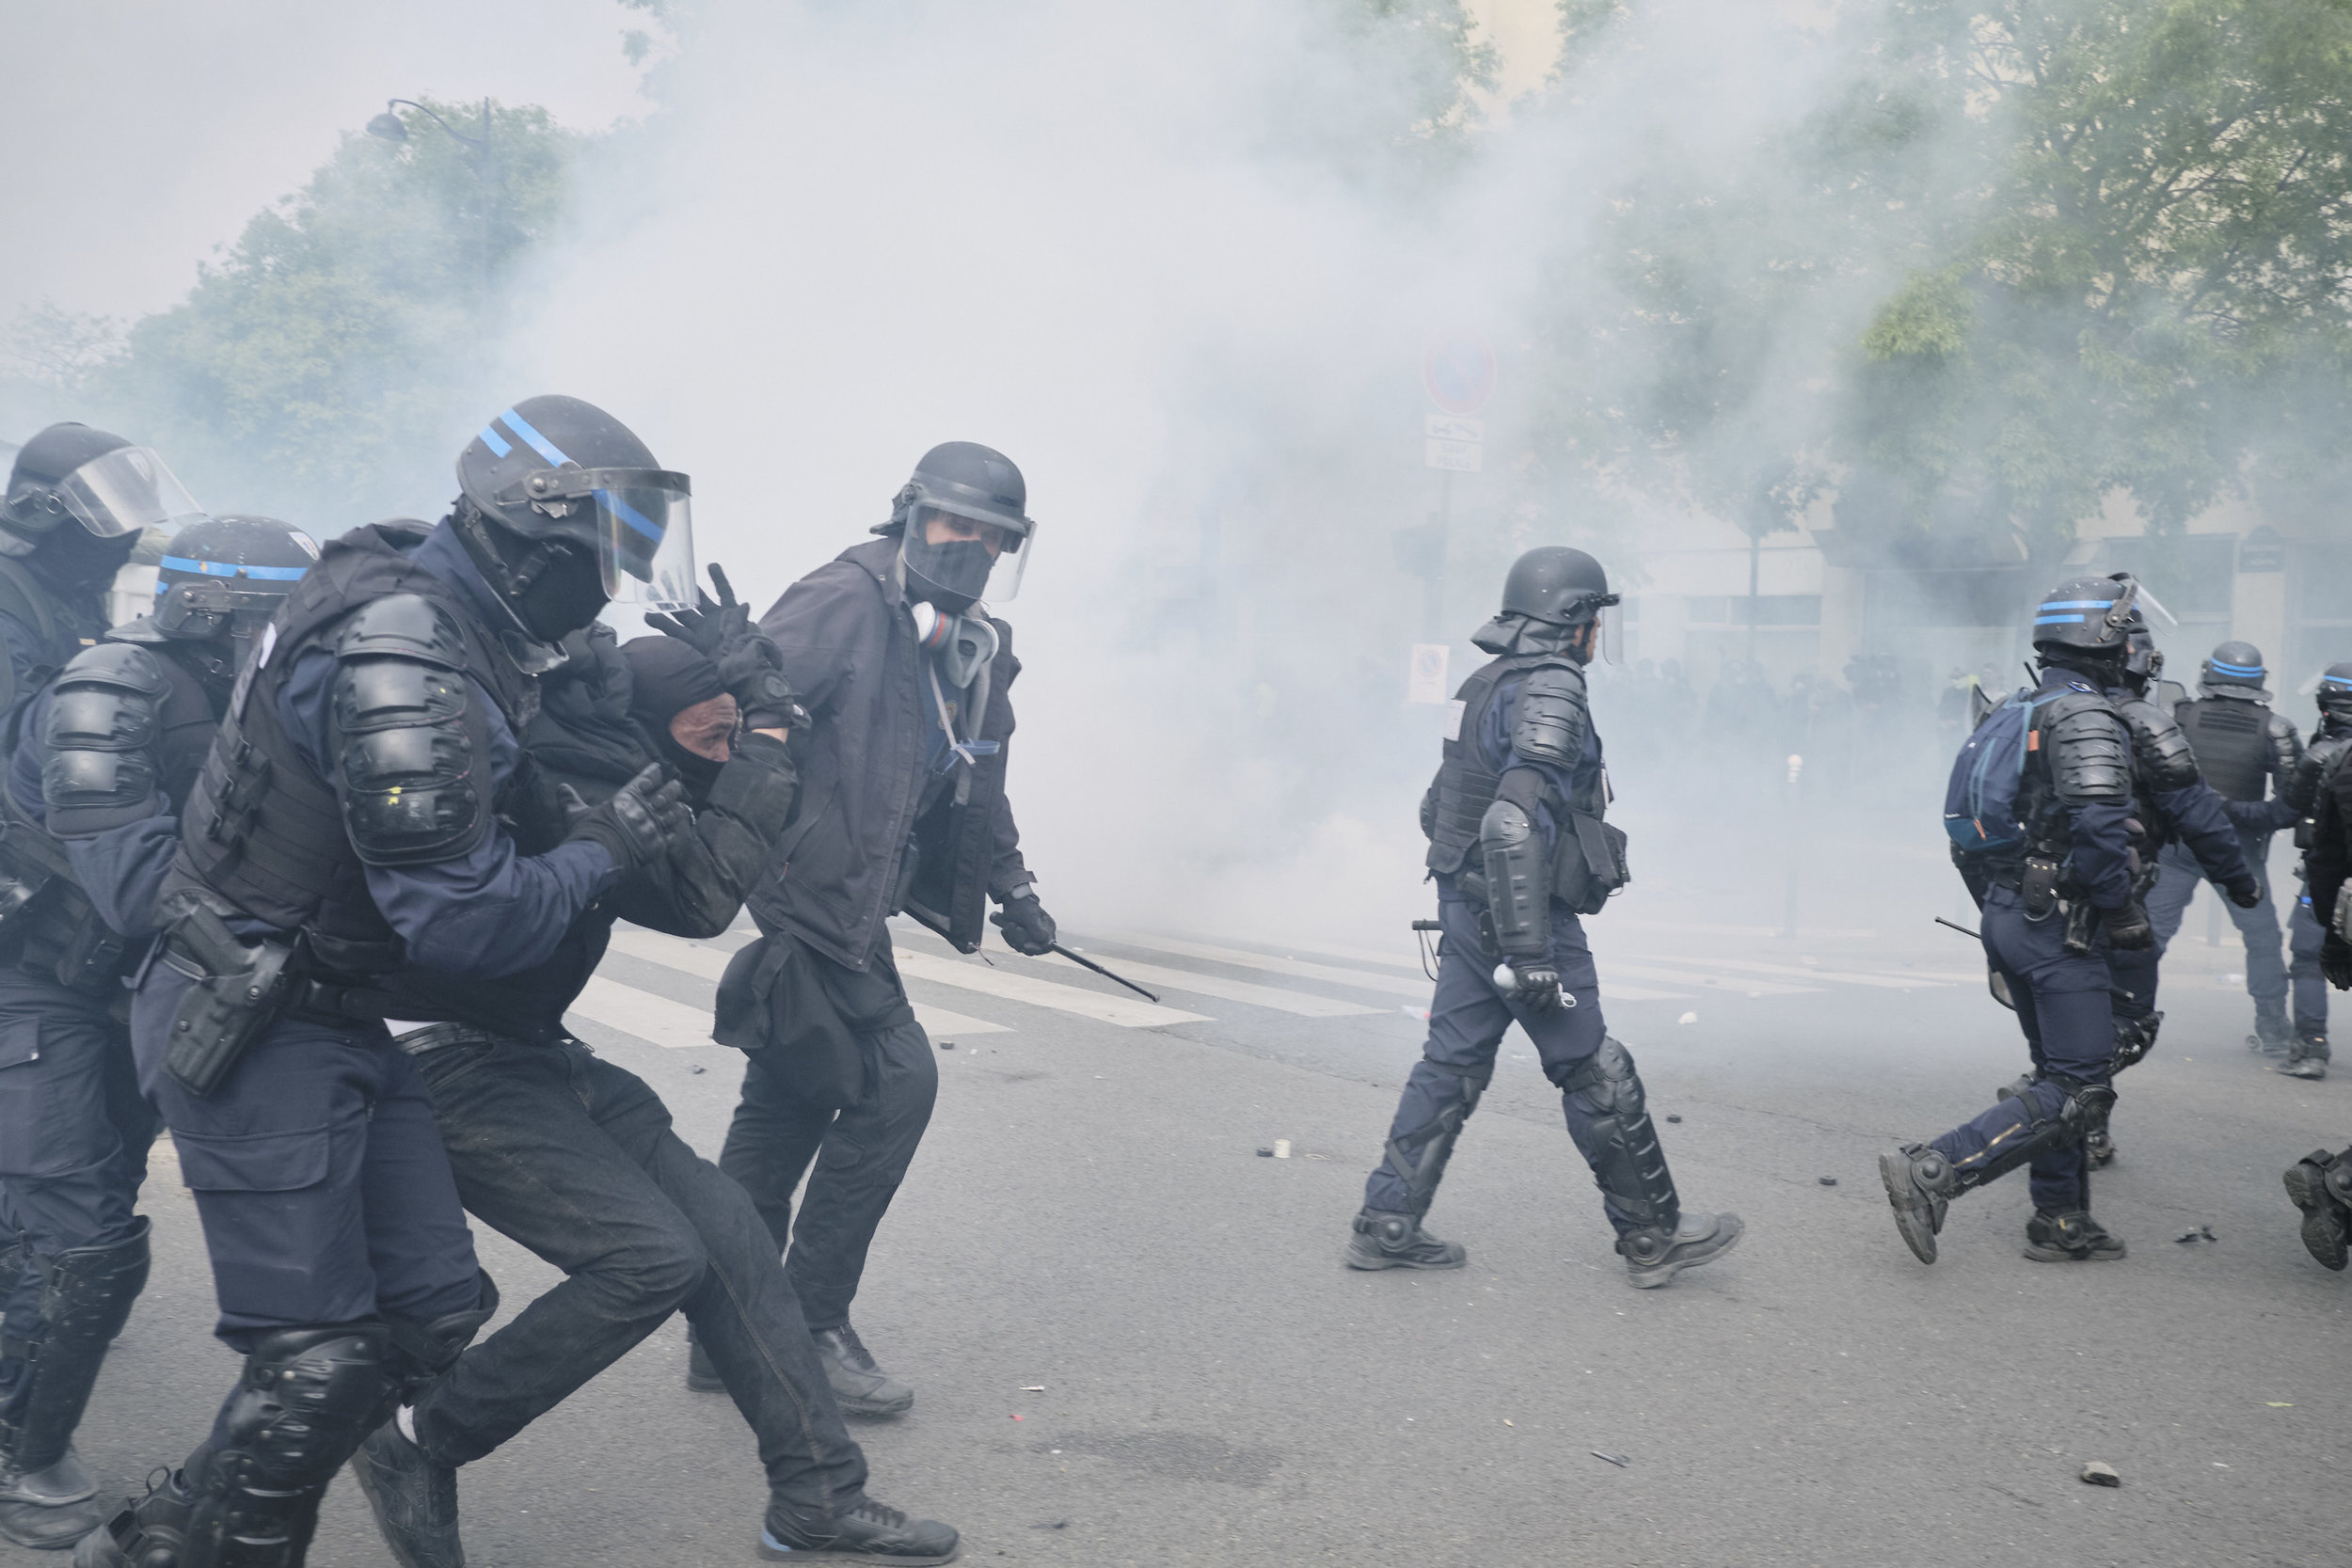 Anti-fascist protest participant being arrested during a violent confrontation with the police at The Avenue des Gobelins.